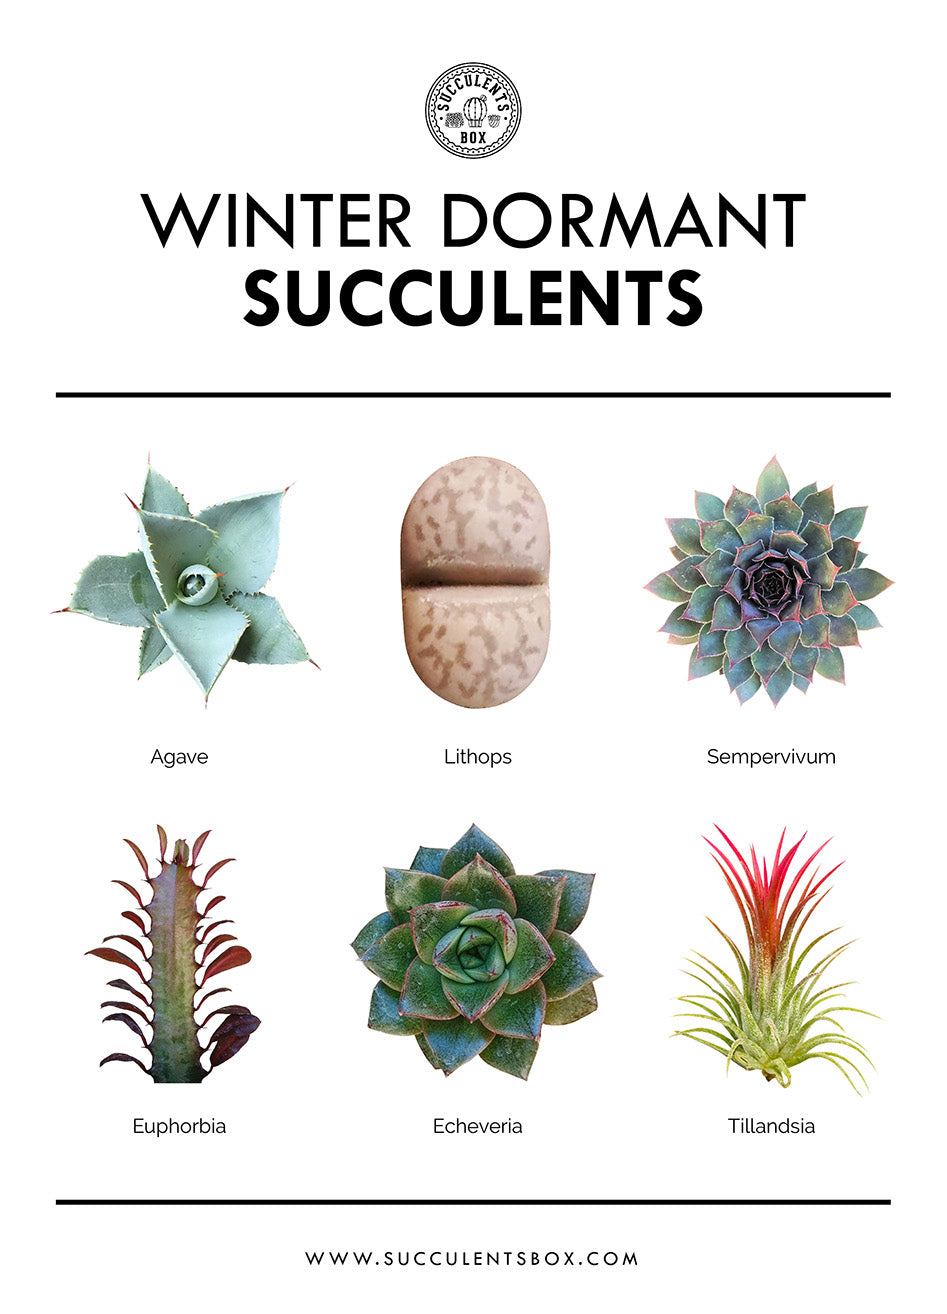 Succulent Dormancy 101 Summer Vs Winter Dormant Succulents Succulents Box